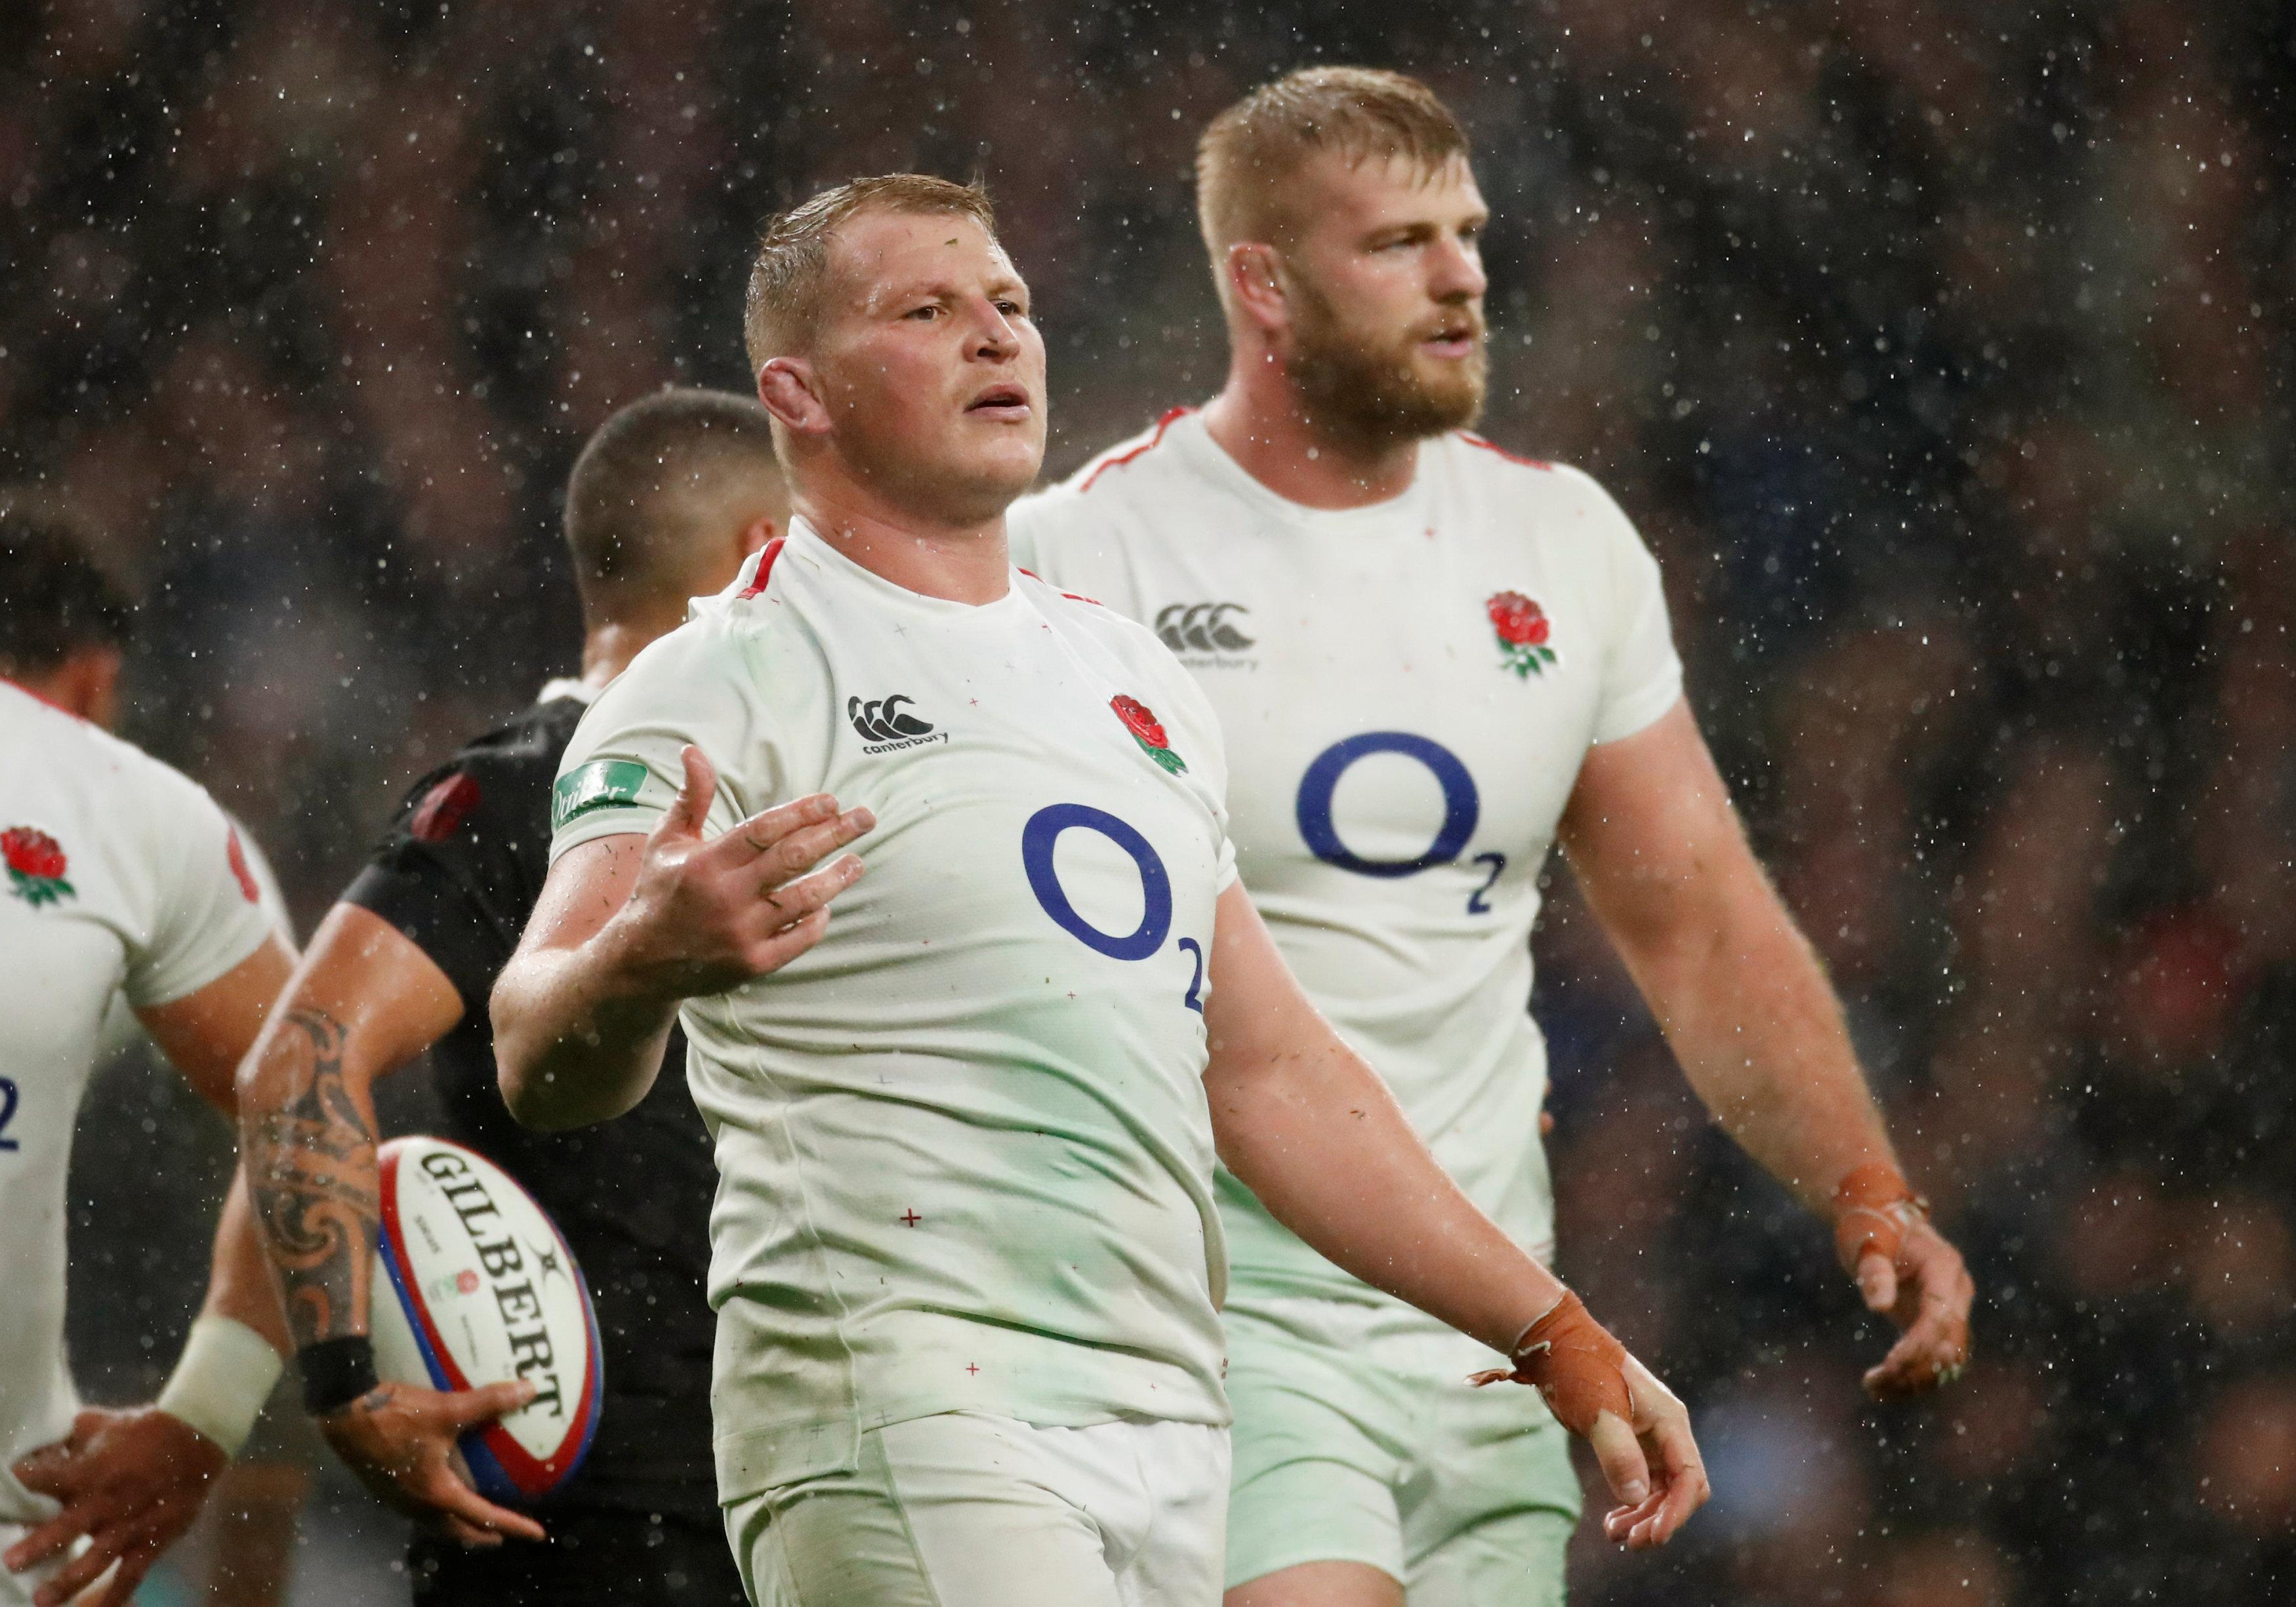 England lost 15-16 to New Zealand on Saturday